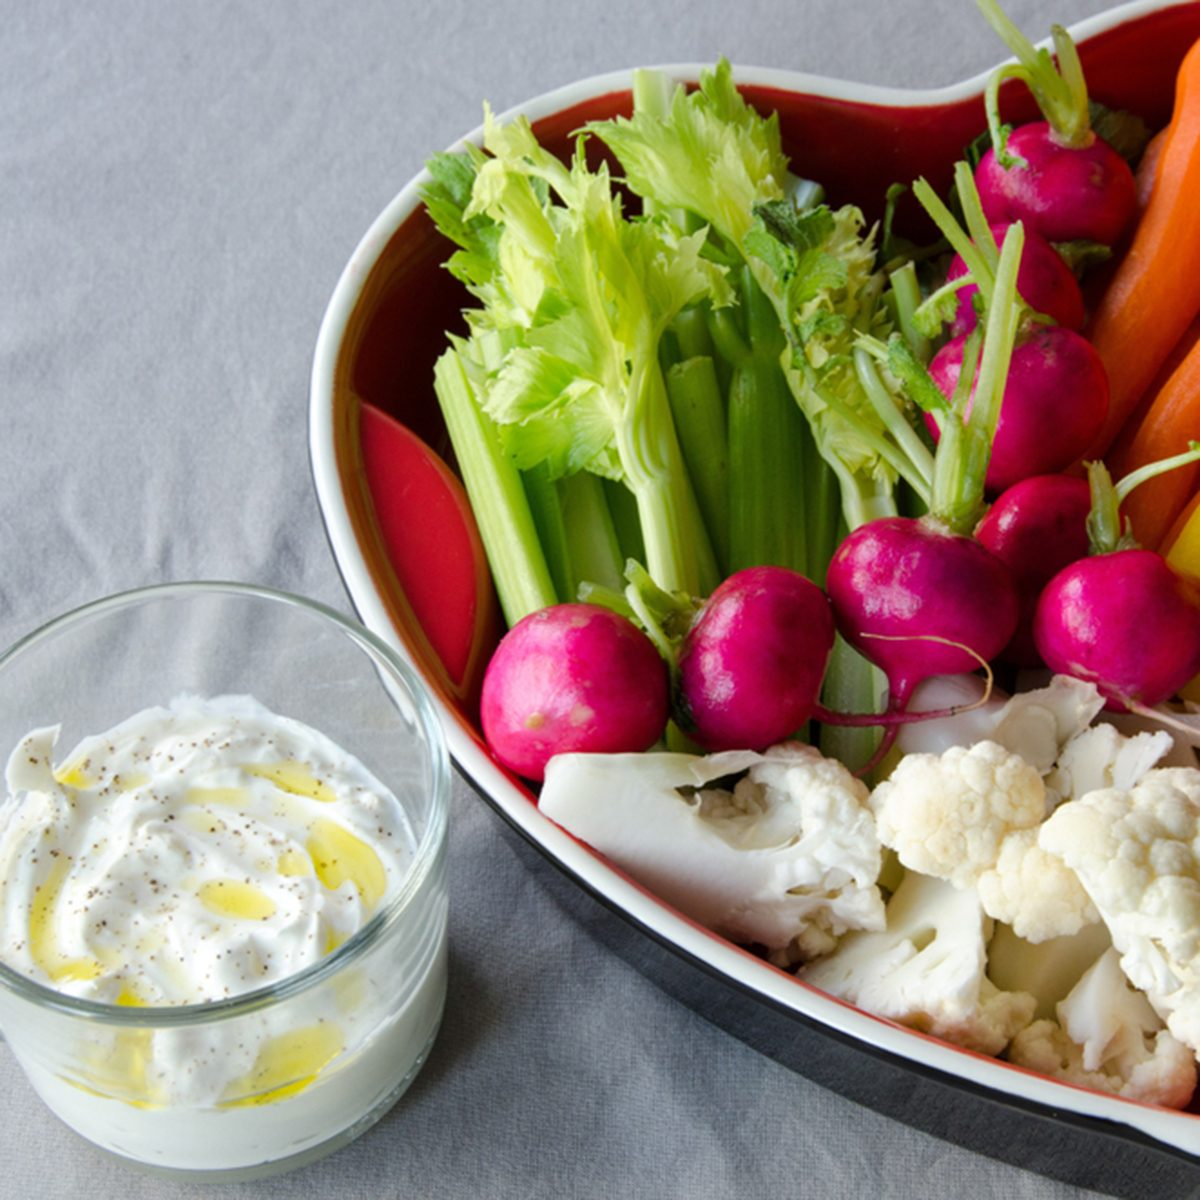 Vegetables in a heart-shaped tray ready to eat on light background.